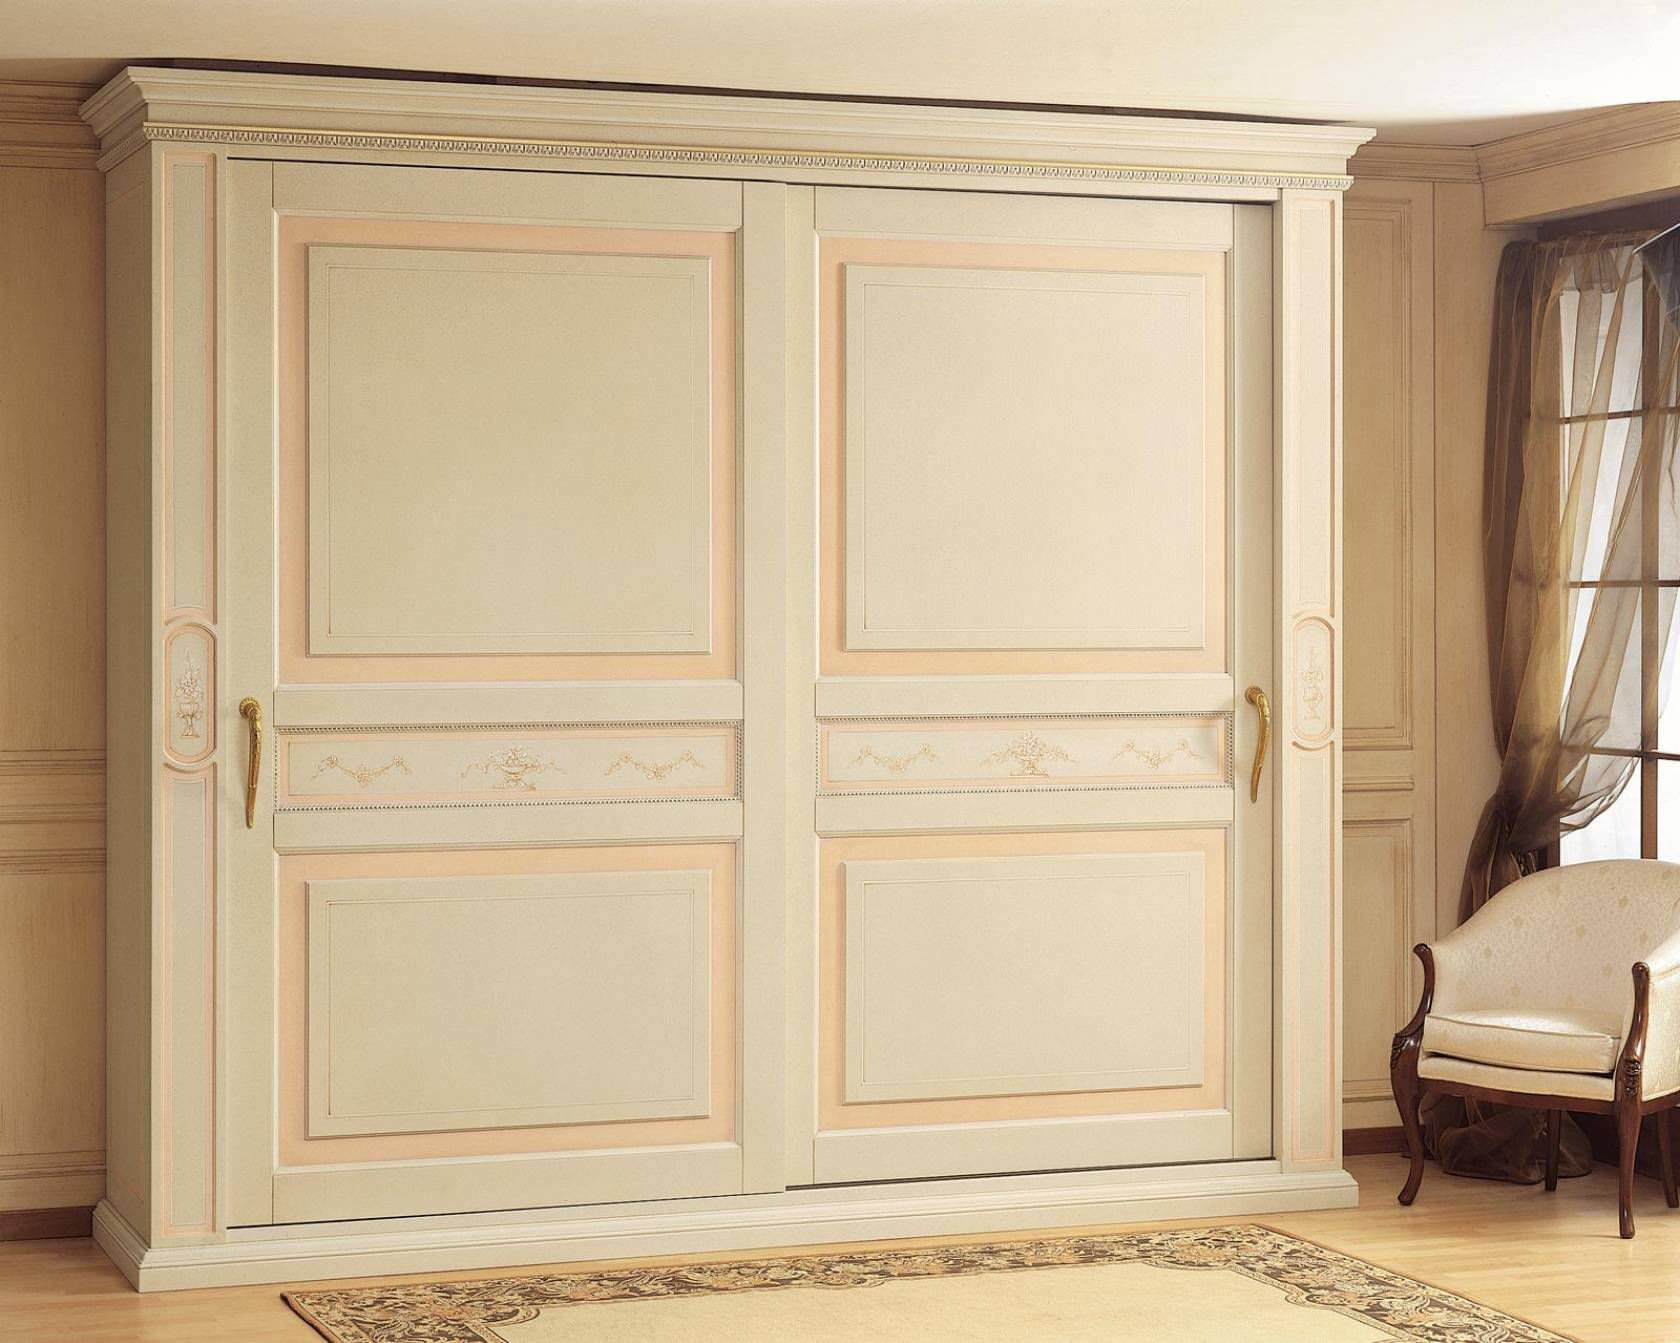 Traditional Wardrobe Wooden Sliding Door Canova Vimercati